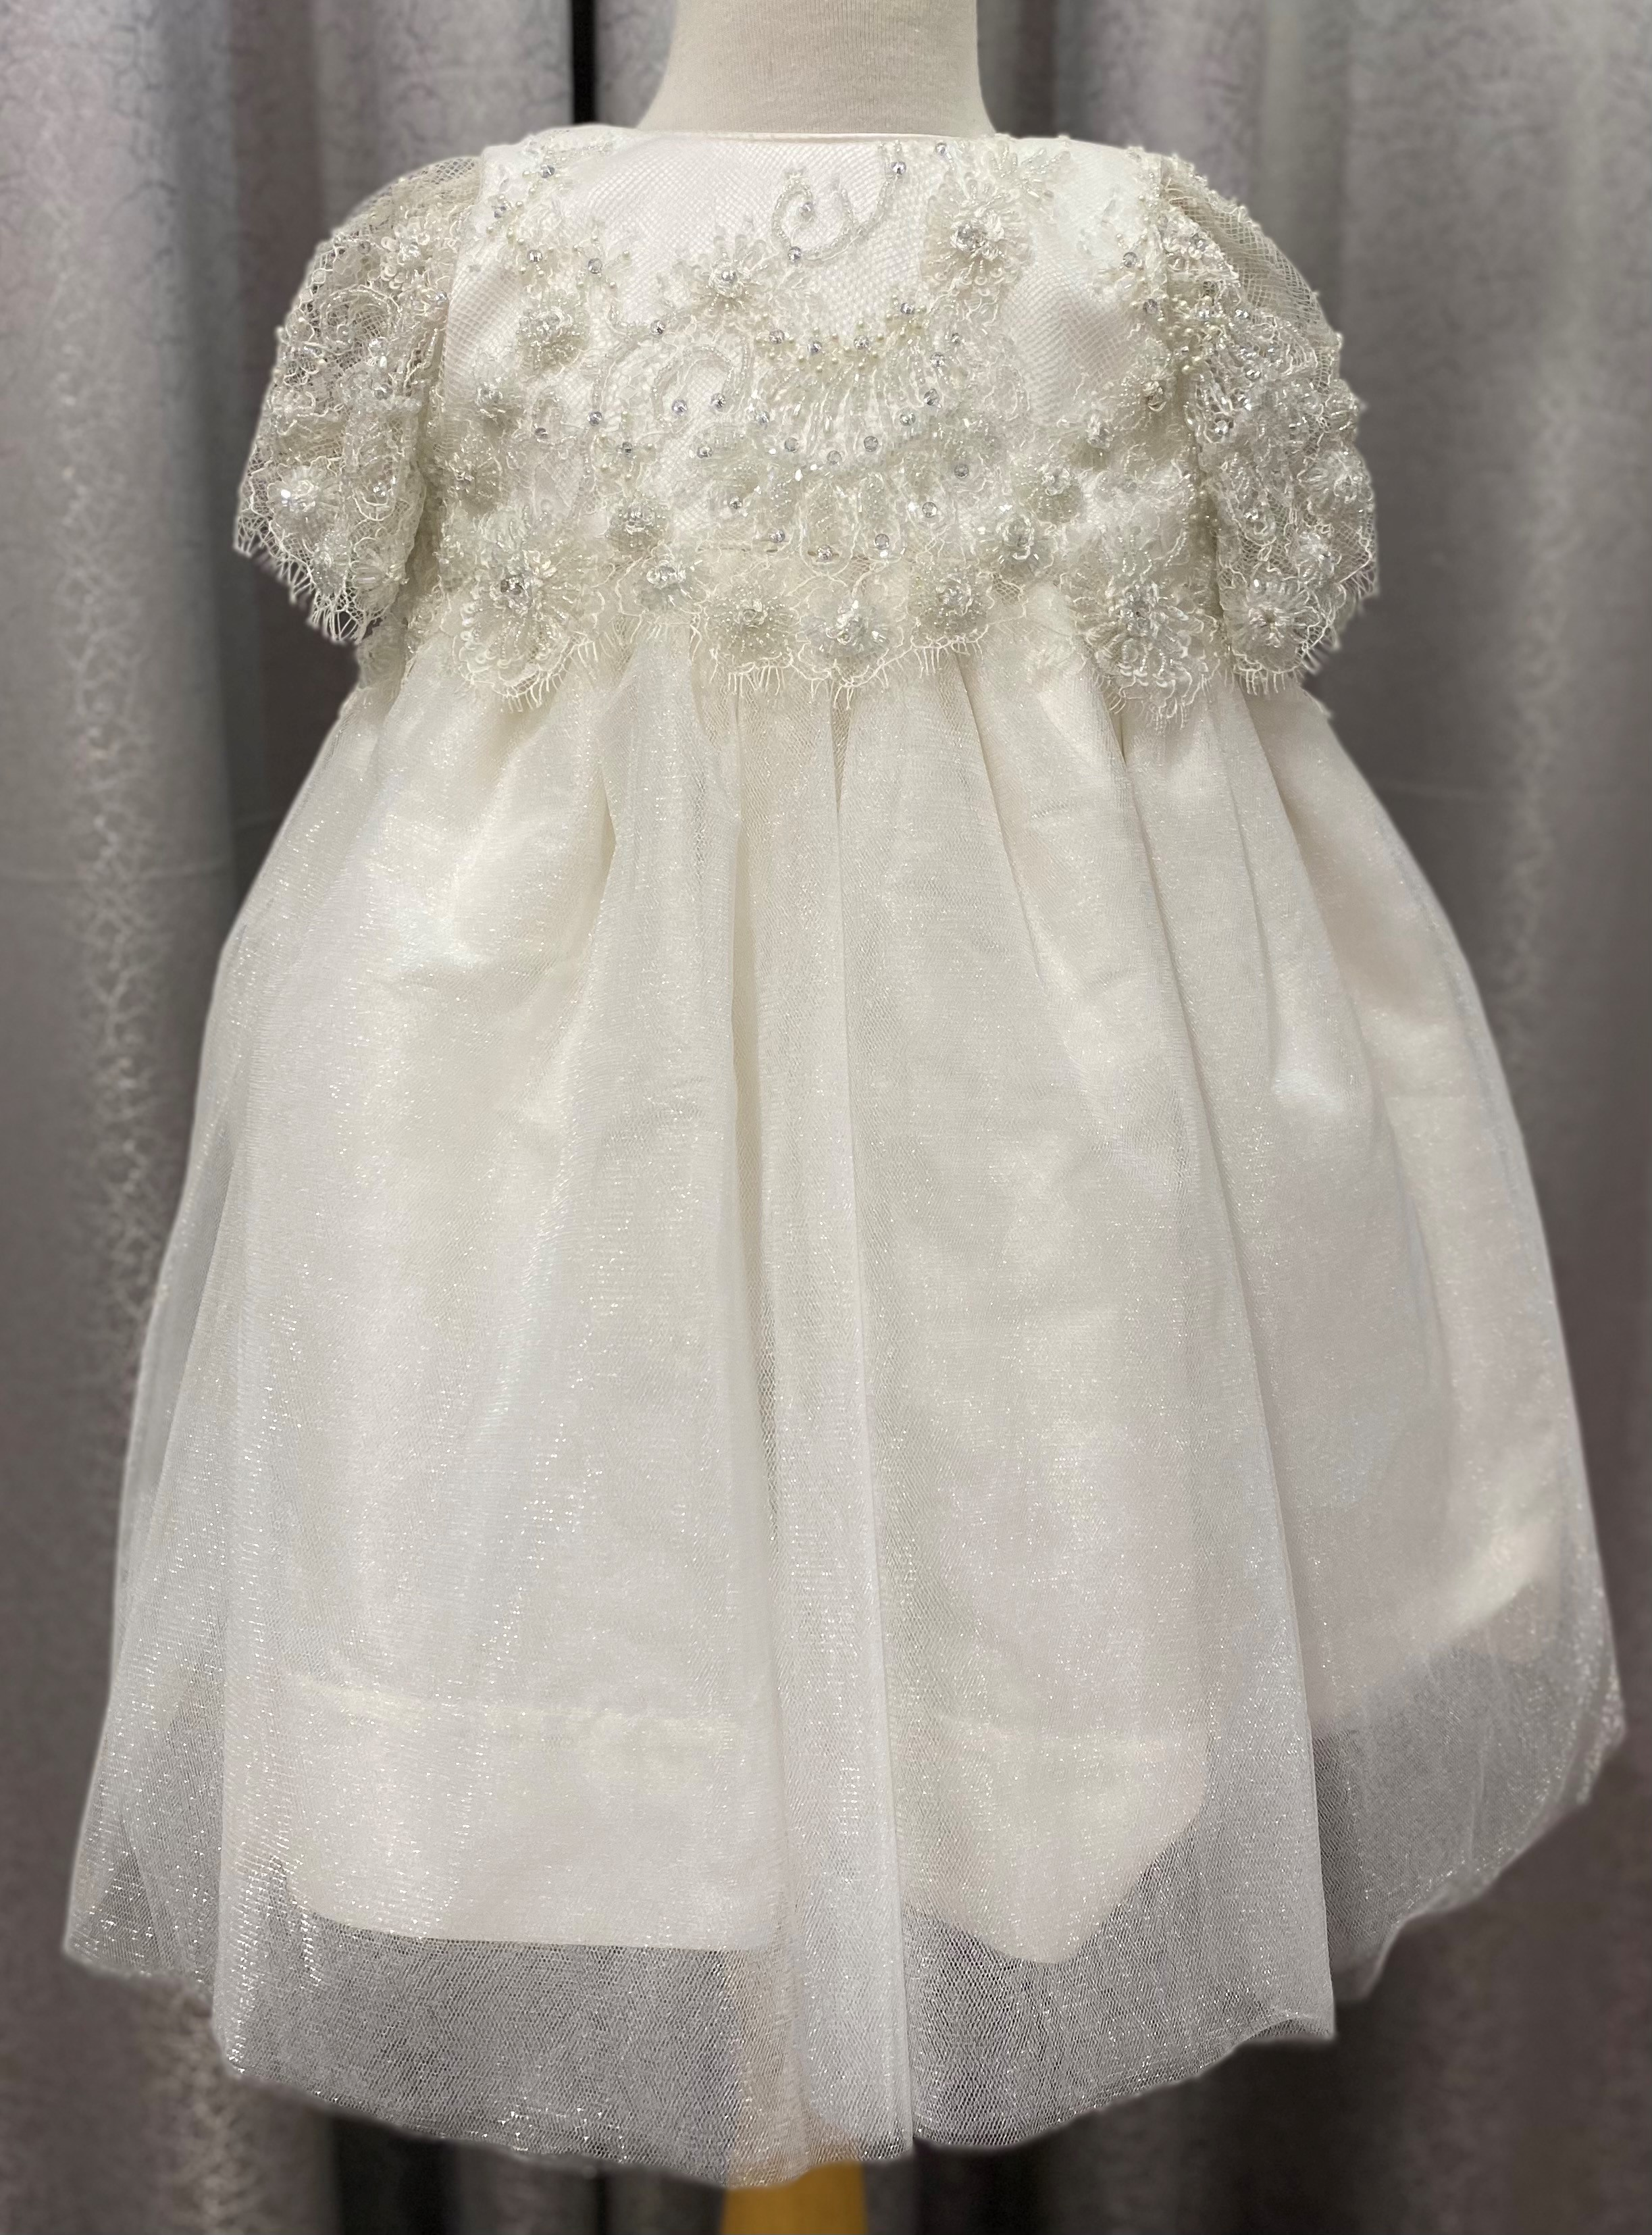 Coco Lace Bodice with Shimmer tulle